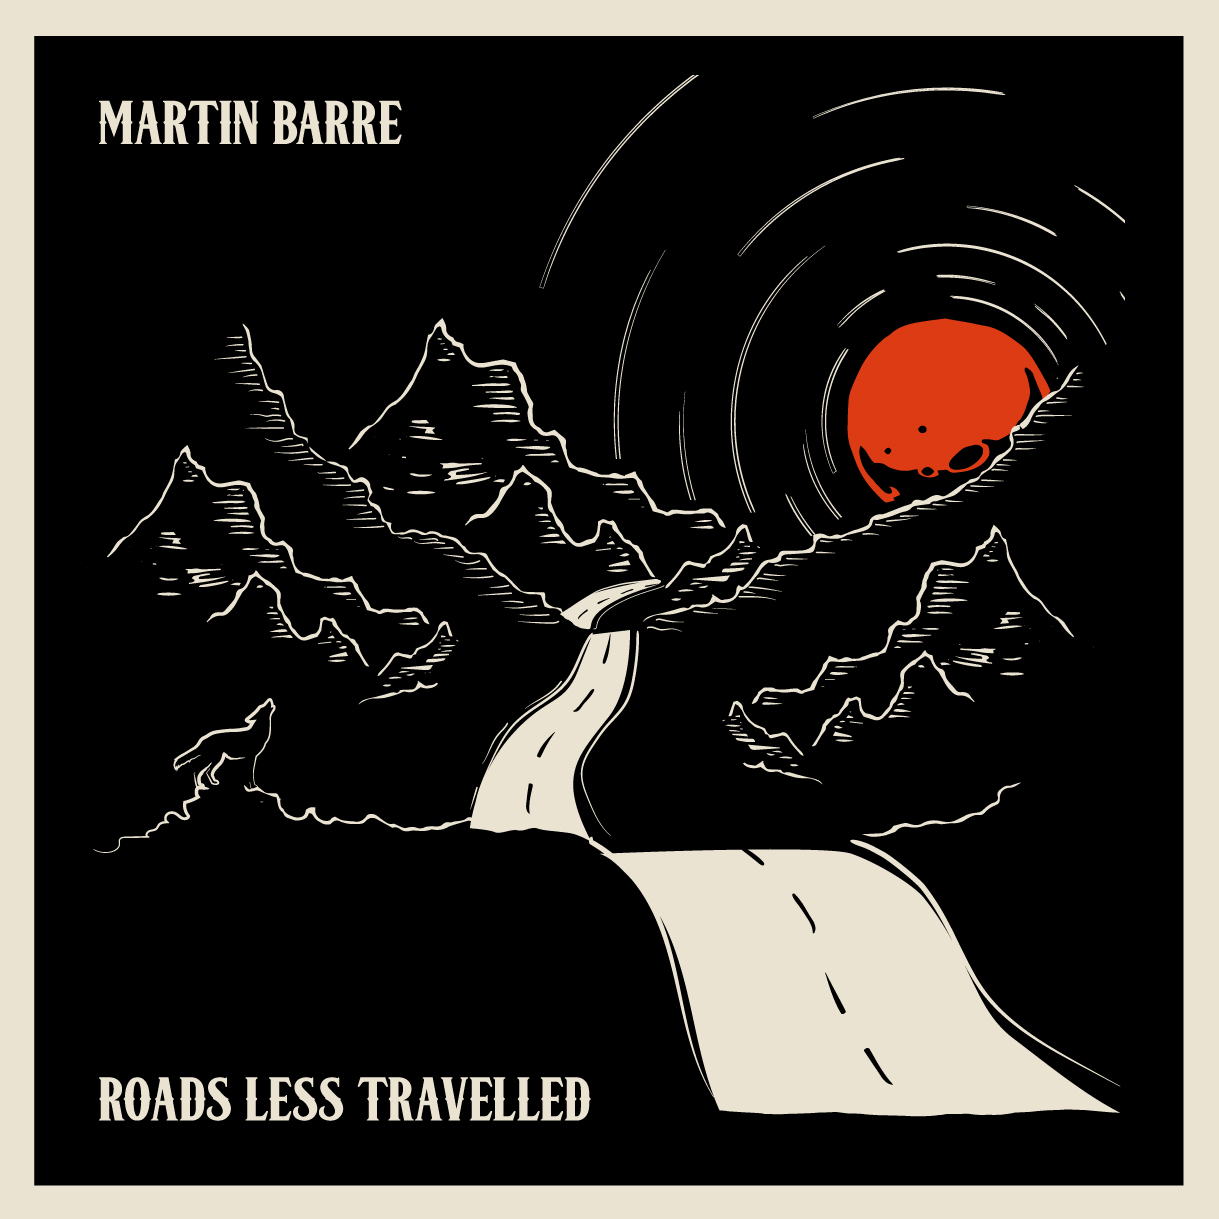 Album art for Martin Barre's upcoming sixth solo album 'Roads Less Travelled'.